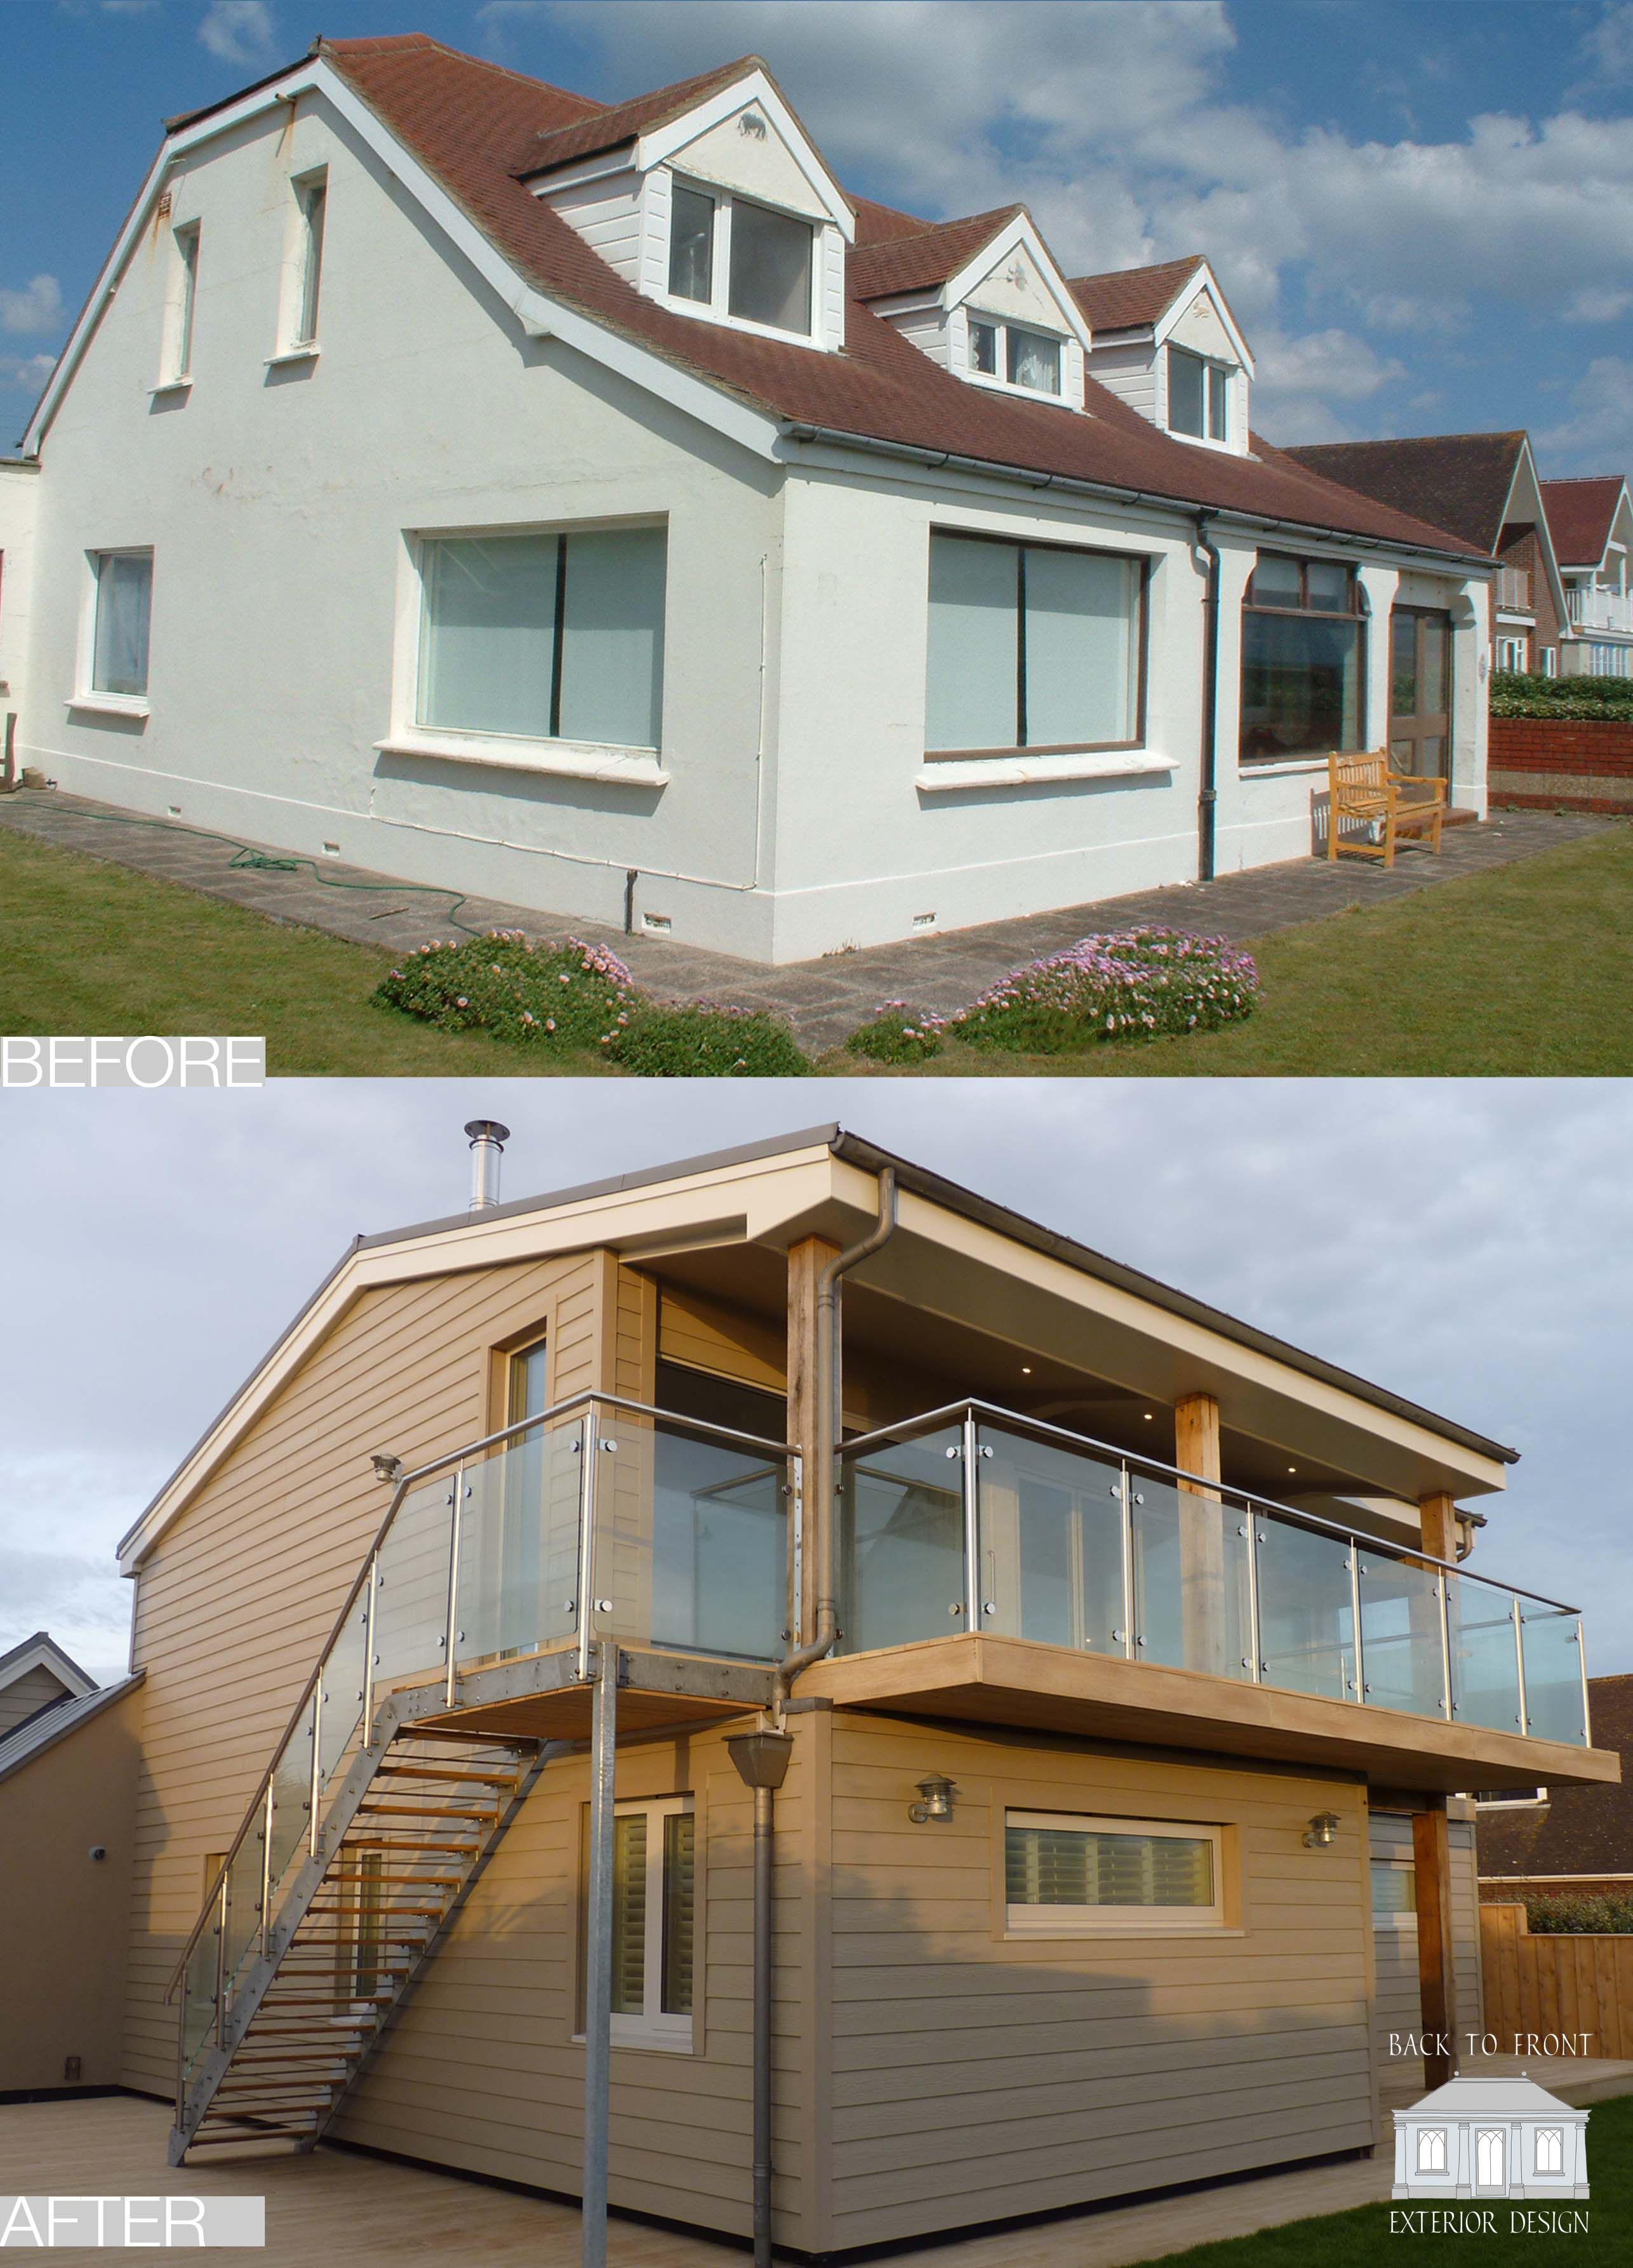 Back to Front Exterior Design Remodelling Scheme on the